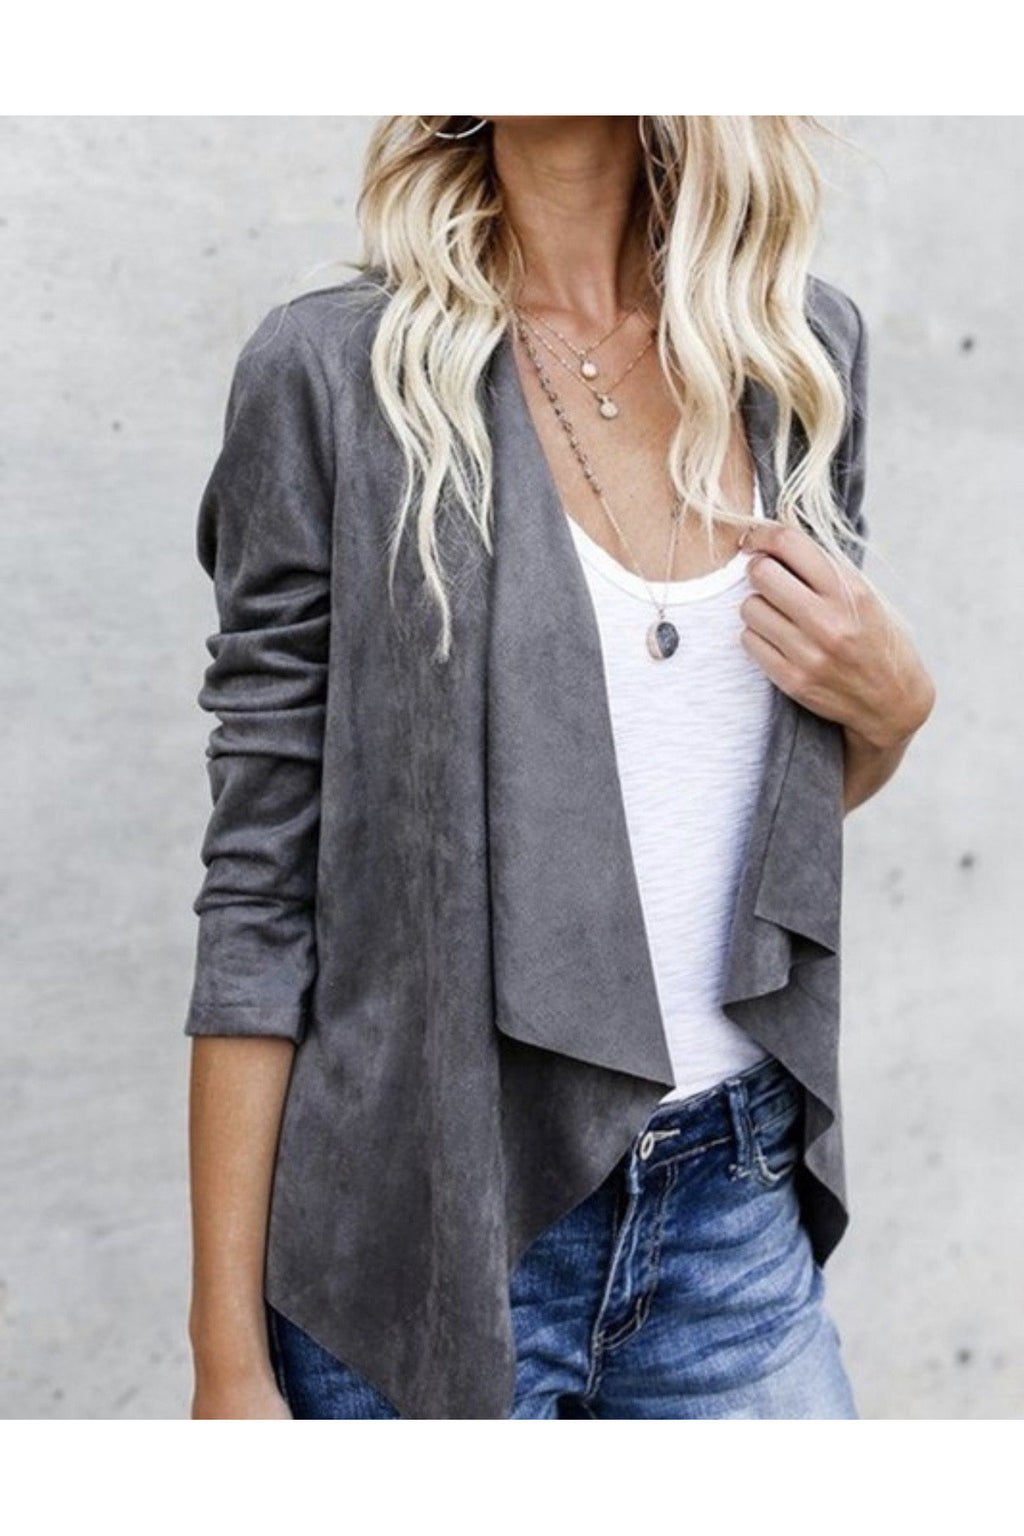 Sadie Suede Jacket in gray